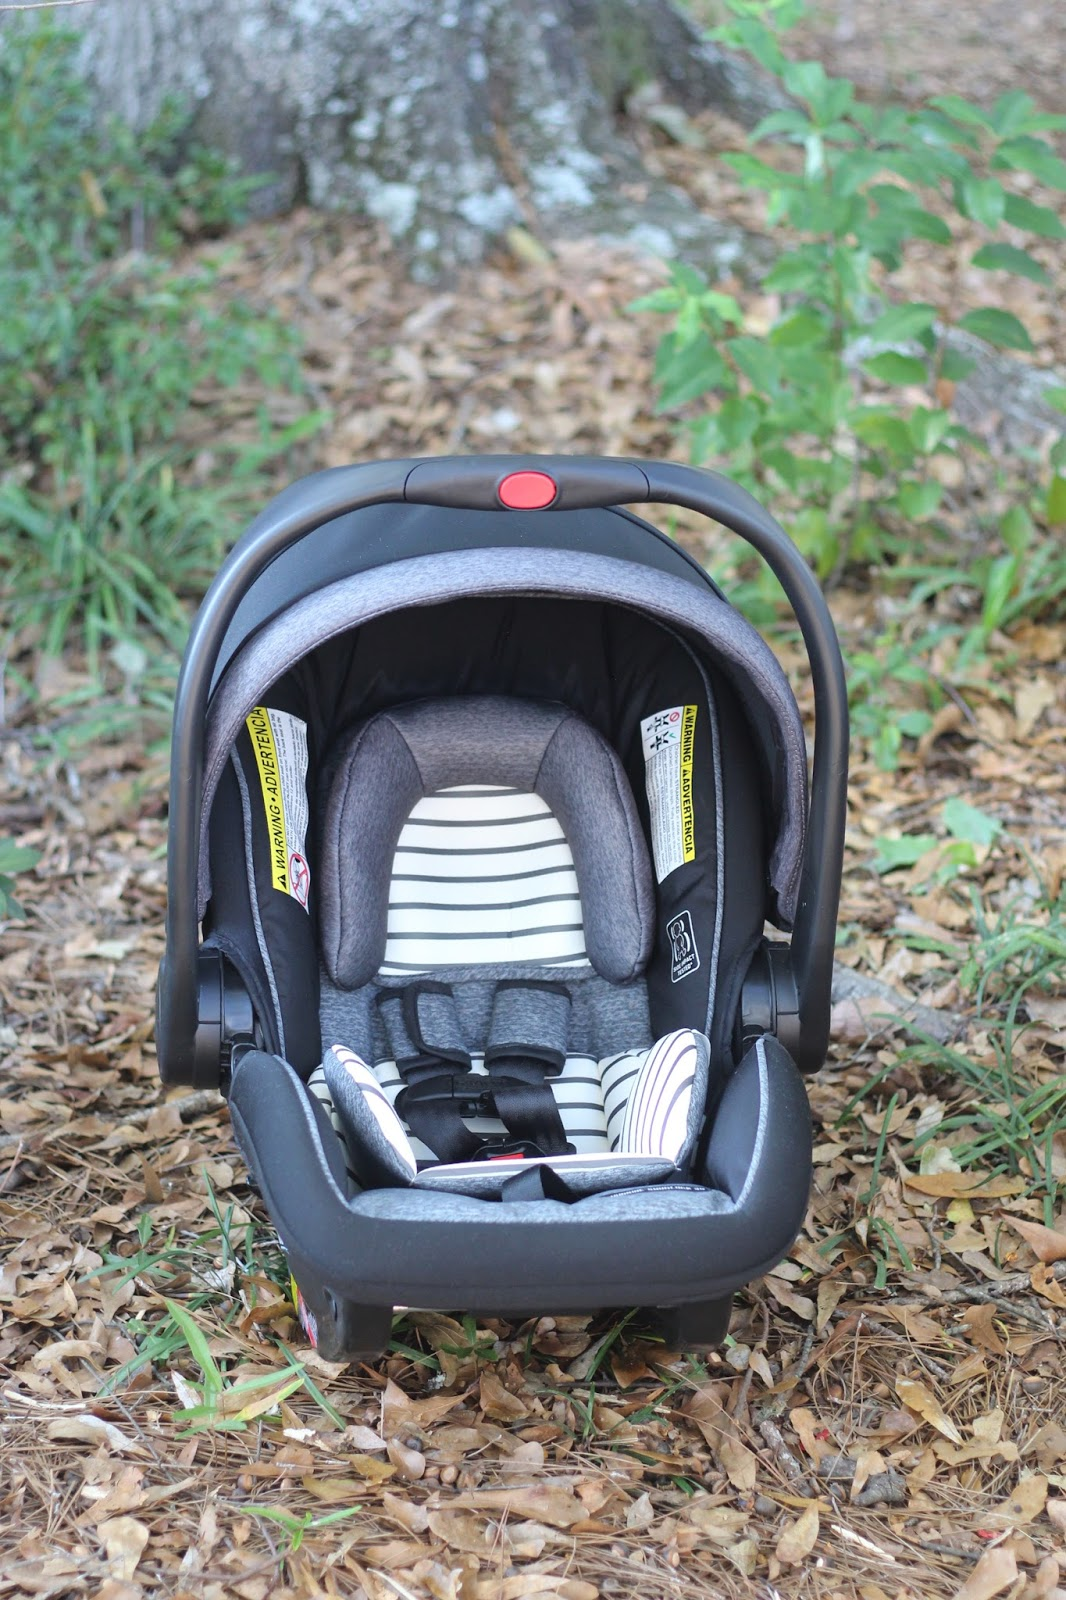 How to install the Graco®  SnugLock™ 35 DLX Infant Car Seat